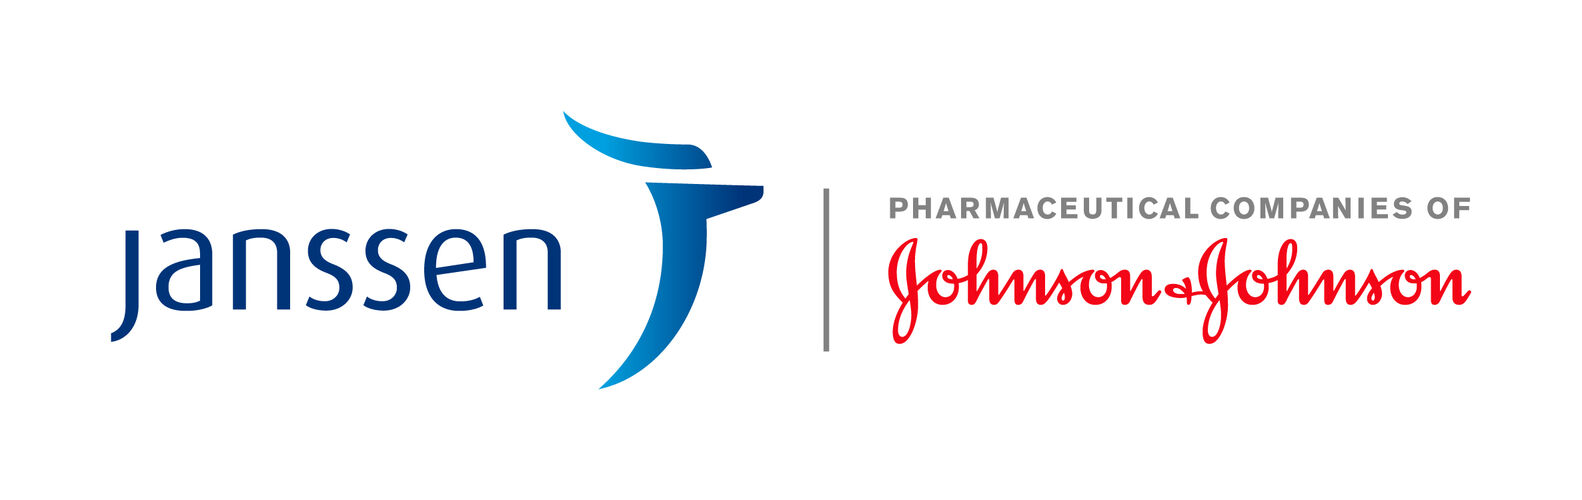 Janssen, the Pharmaceutical Companies of Johnson & Johnson